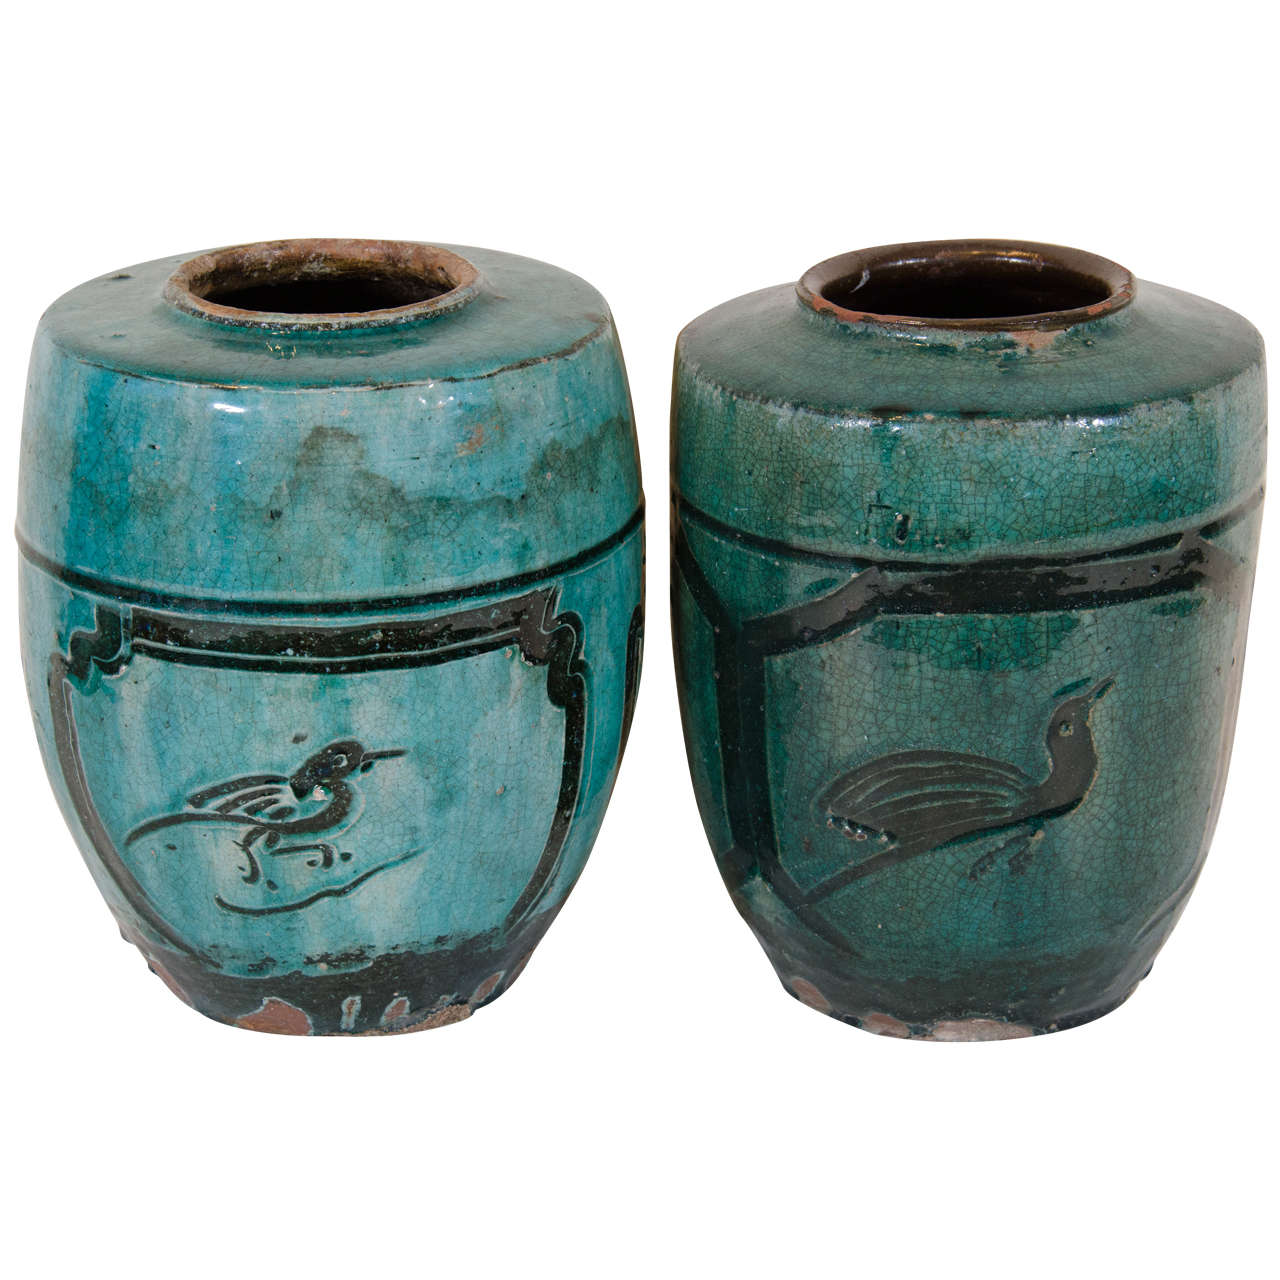 Antique Chinese Ceramic Jars